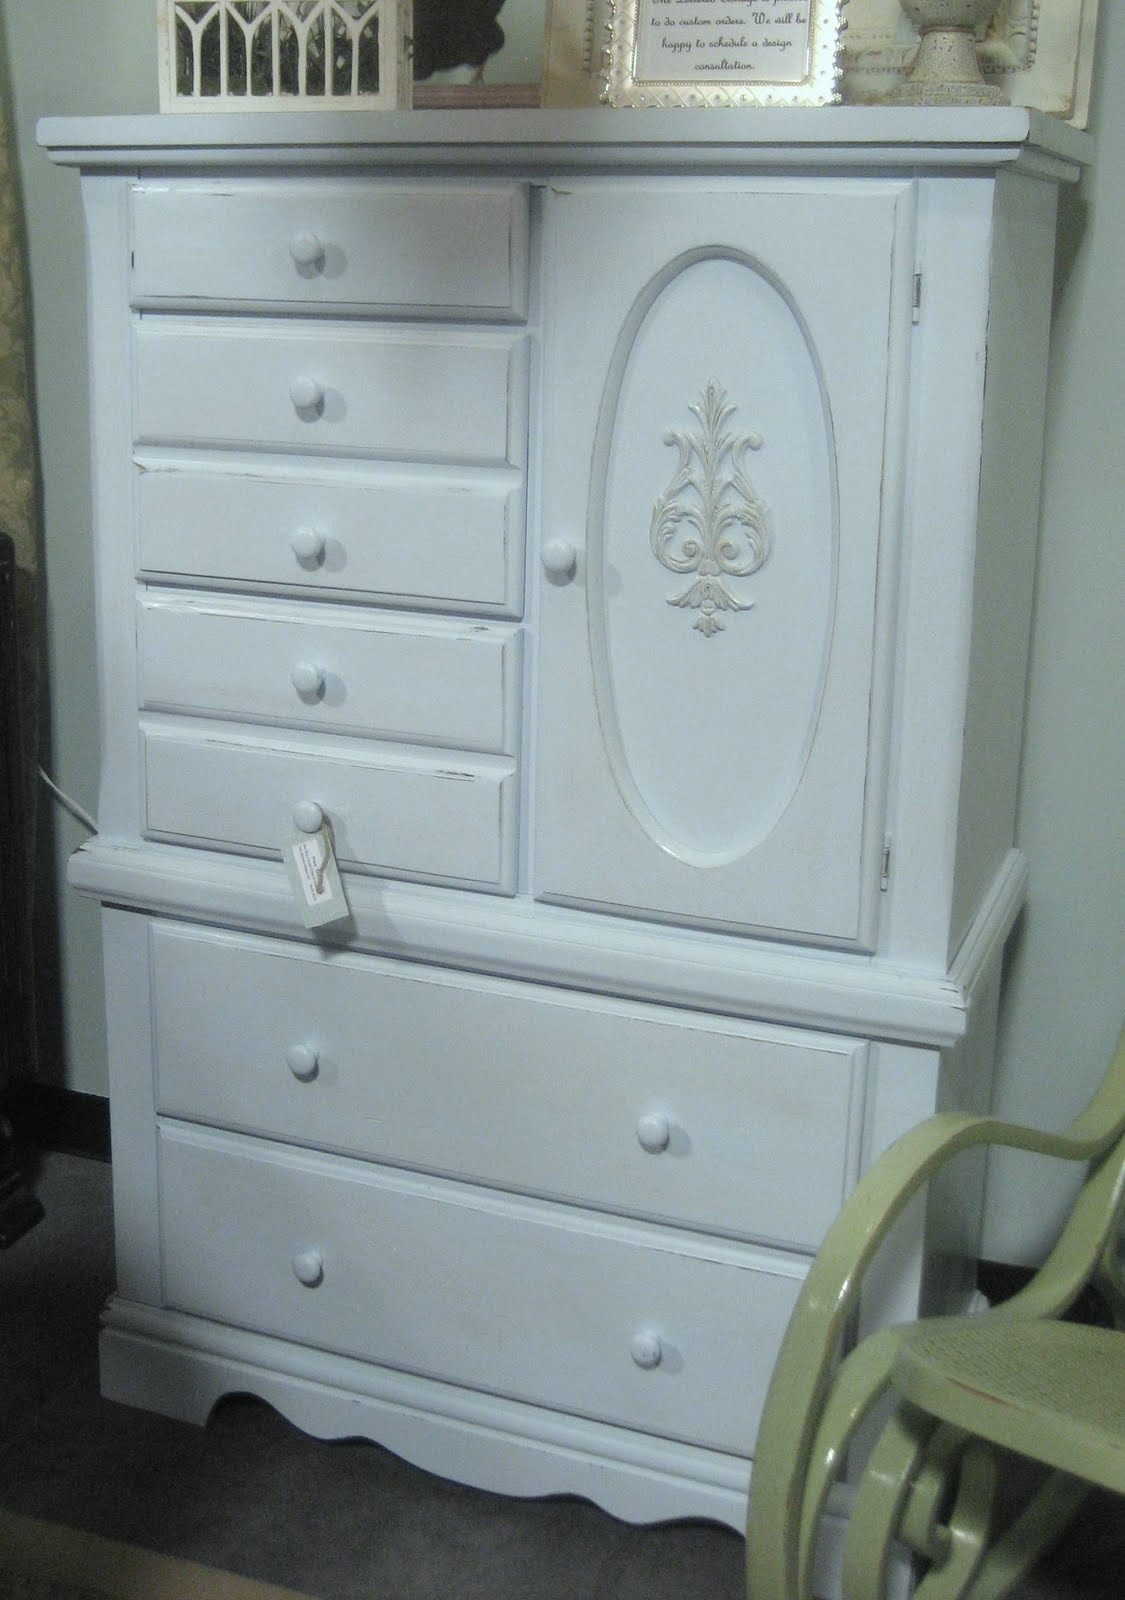 Urban Farmhouse: DIY: Painted Thrift Store Chest of Drawers